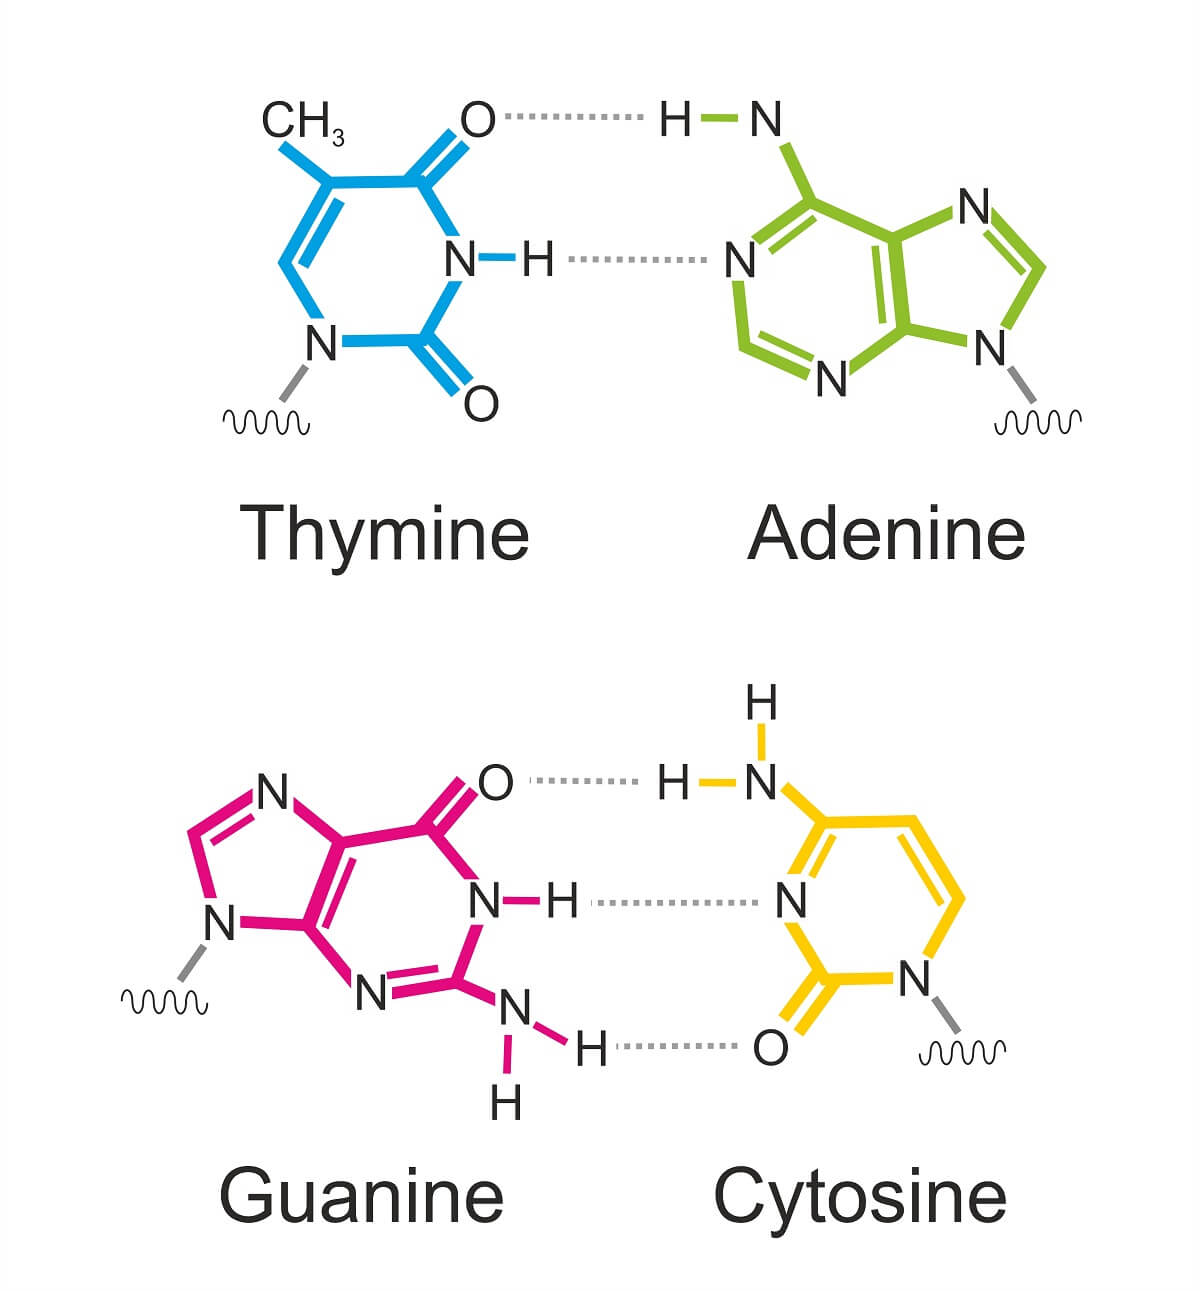 Base pairing only occurs between complementary nucleotides.